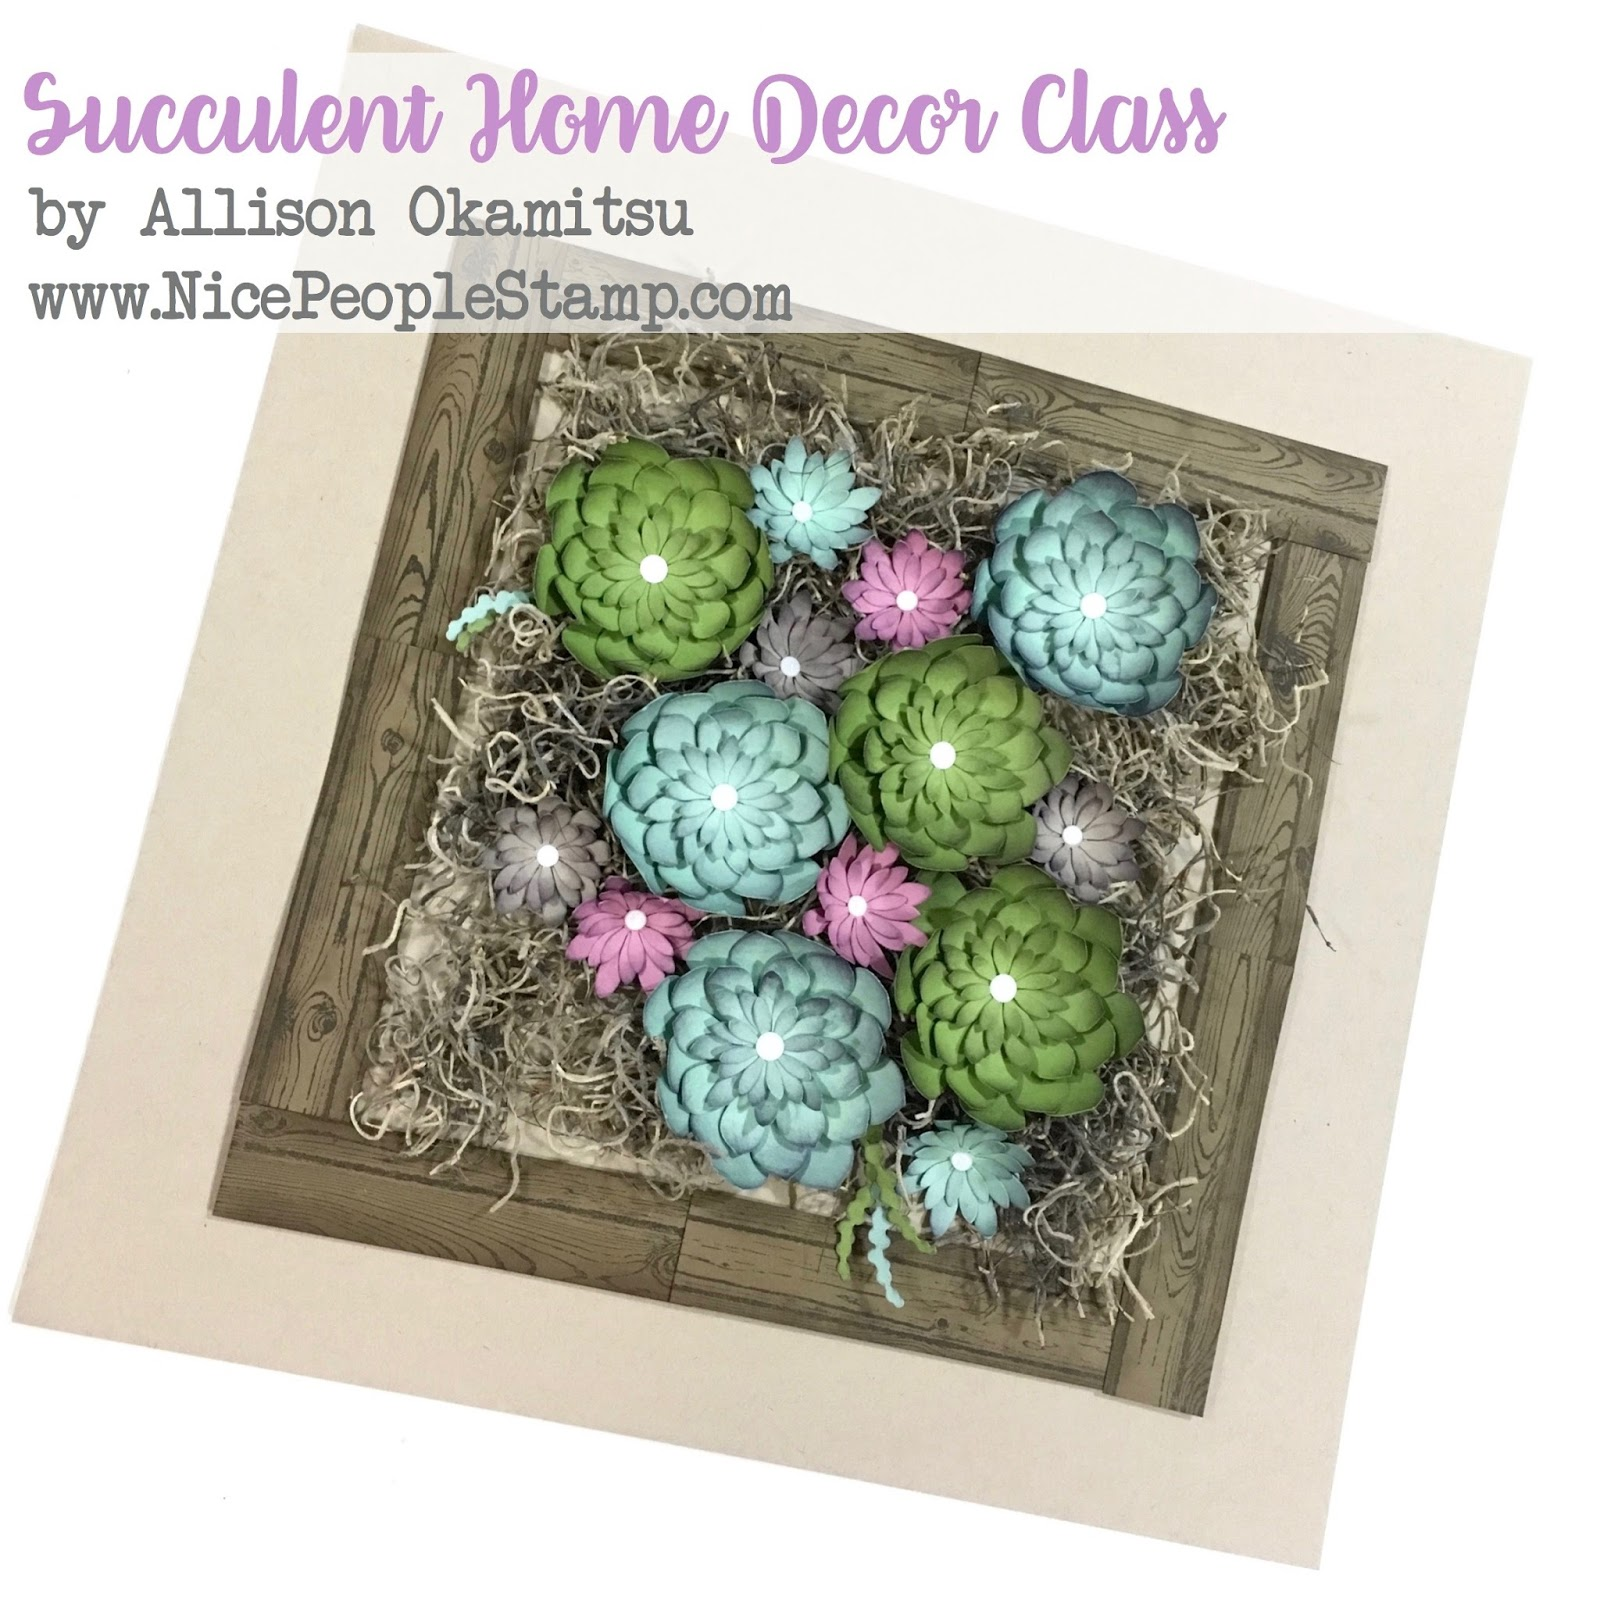 nice people stamp succulent home decor class sewing studio fashion fitting home decor amp more online